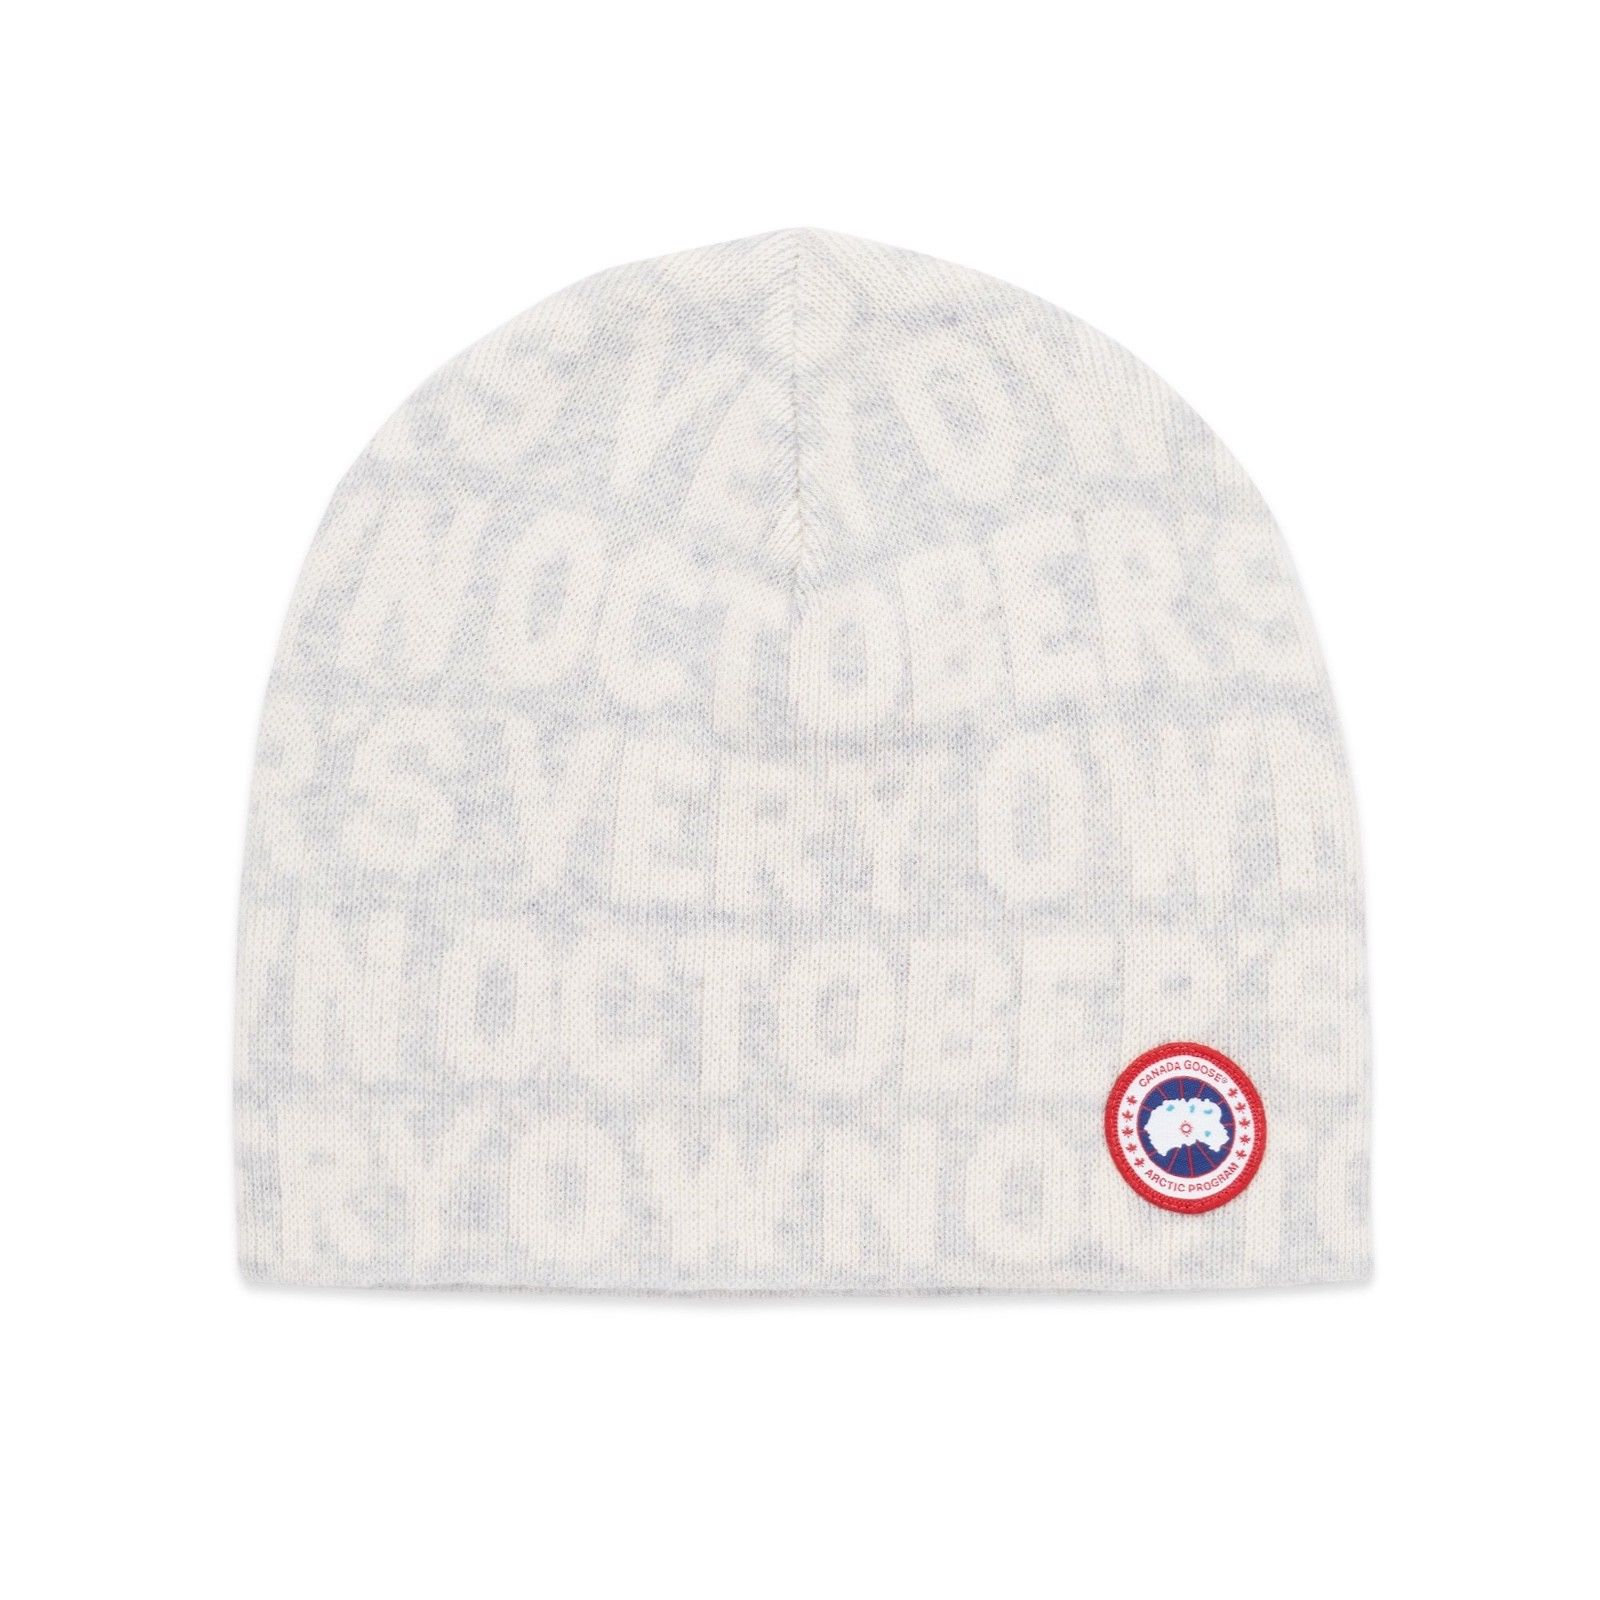 OVO October's Very Own x Canada Goose Boreal Beanie (White)